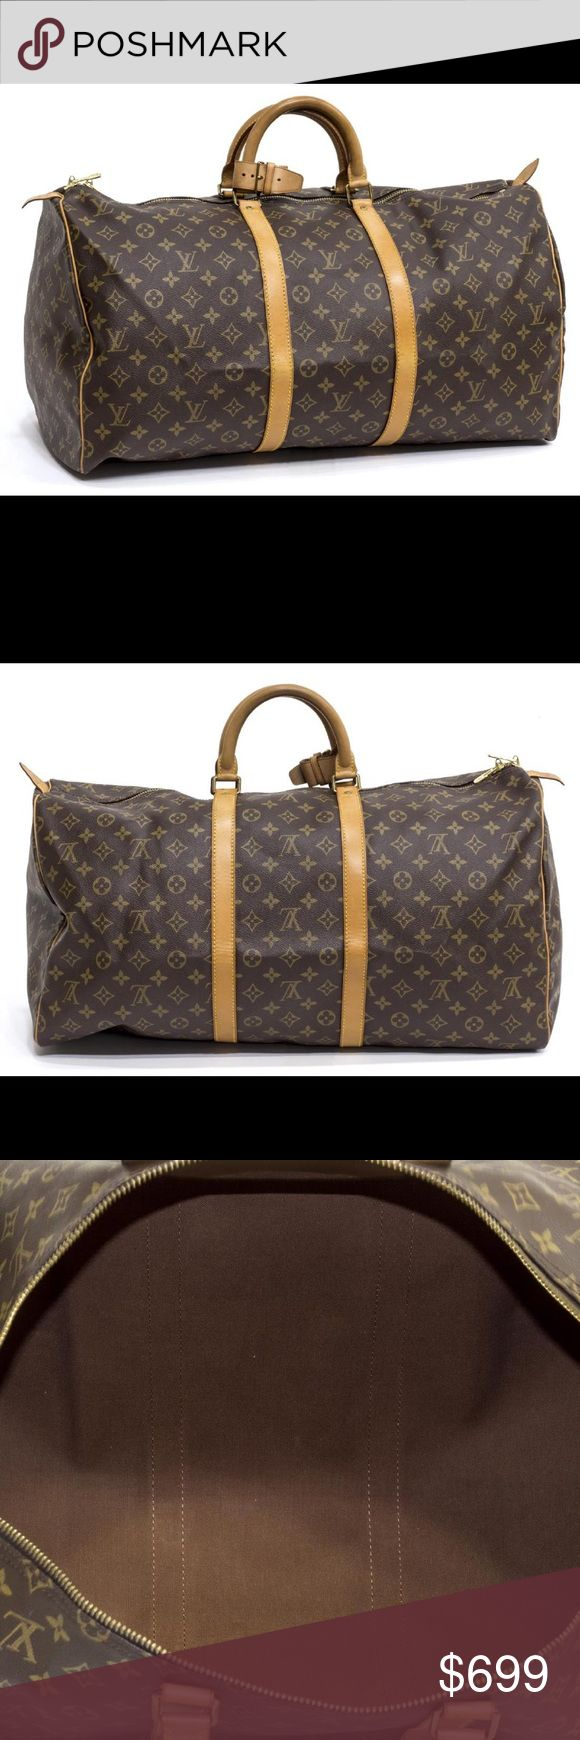 "LOUIS VUITTON 'KEEPALL 55' MONOGRAM CANVAS DUFFLE Louis Vuitton ""Keepall 55"" traveling duffle bag in monogram canvas, having leather handles, trim, and piping, zipped top opening to brown canvas lined interior, retaining handle strap, accompanied by certificate of authenticity, patination, spotting and creasing to leather, bag: approx 12""h, 21.5""w, 10""d, 2lbs Louis Vuitton Bags Travel Bags"